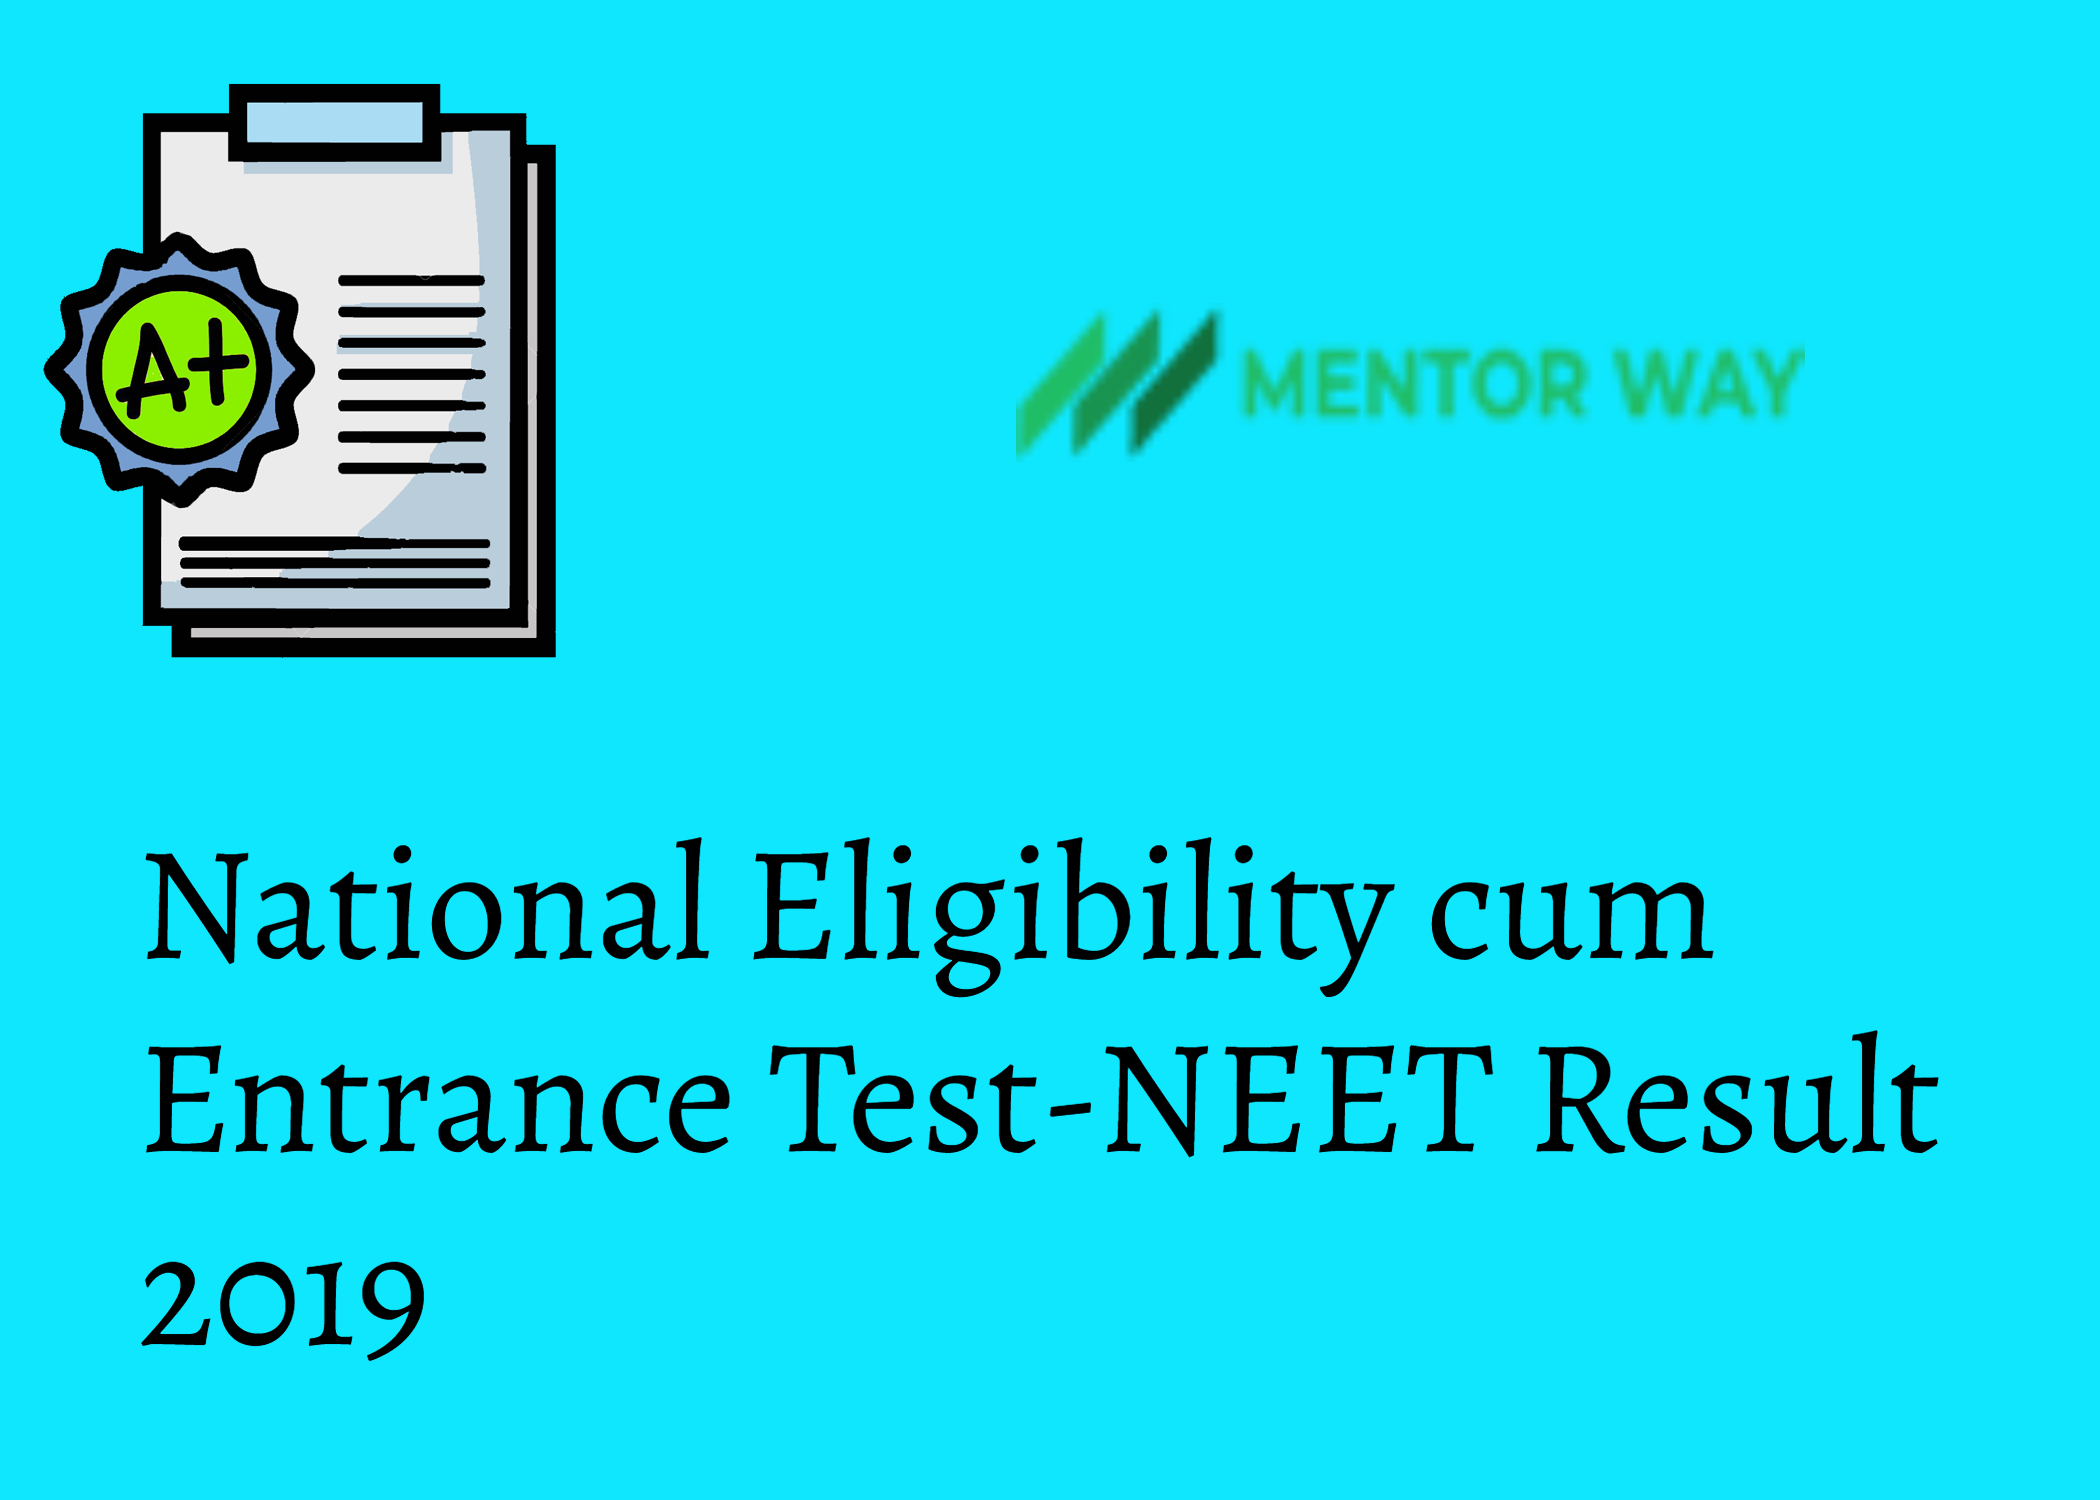 National Eligibility cum Entrance Test-NEET Result 2019